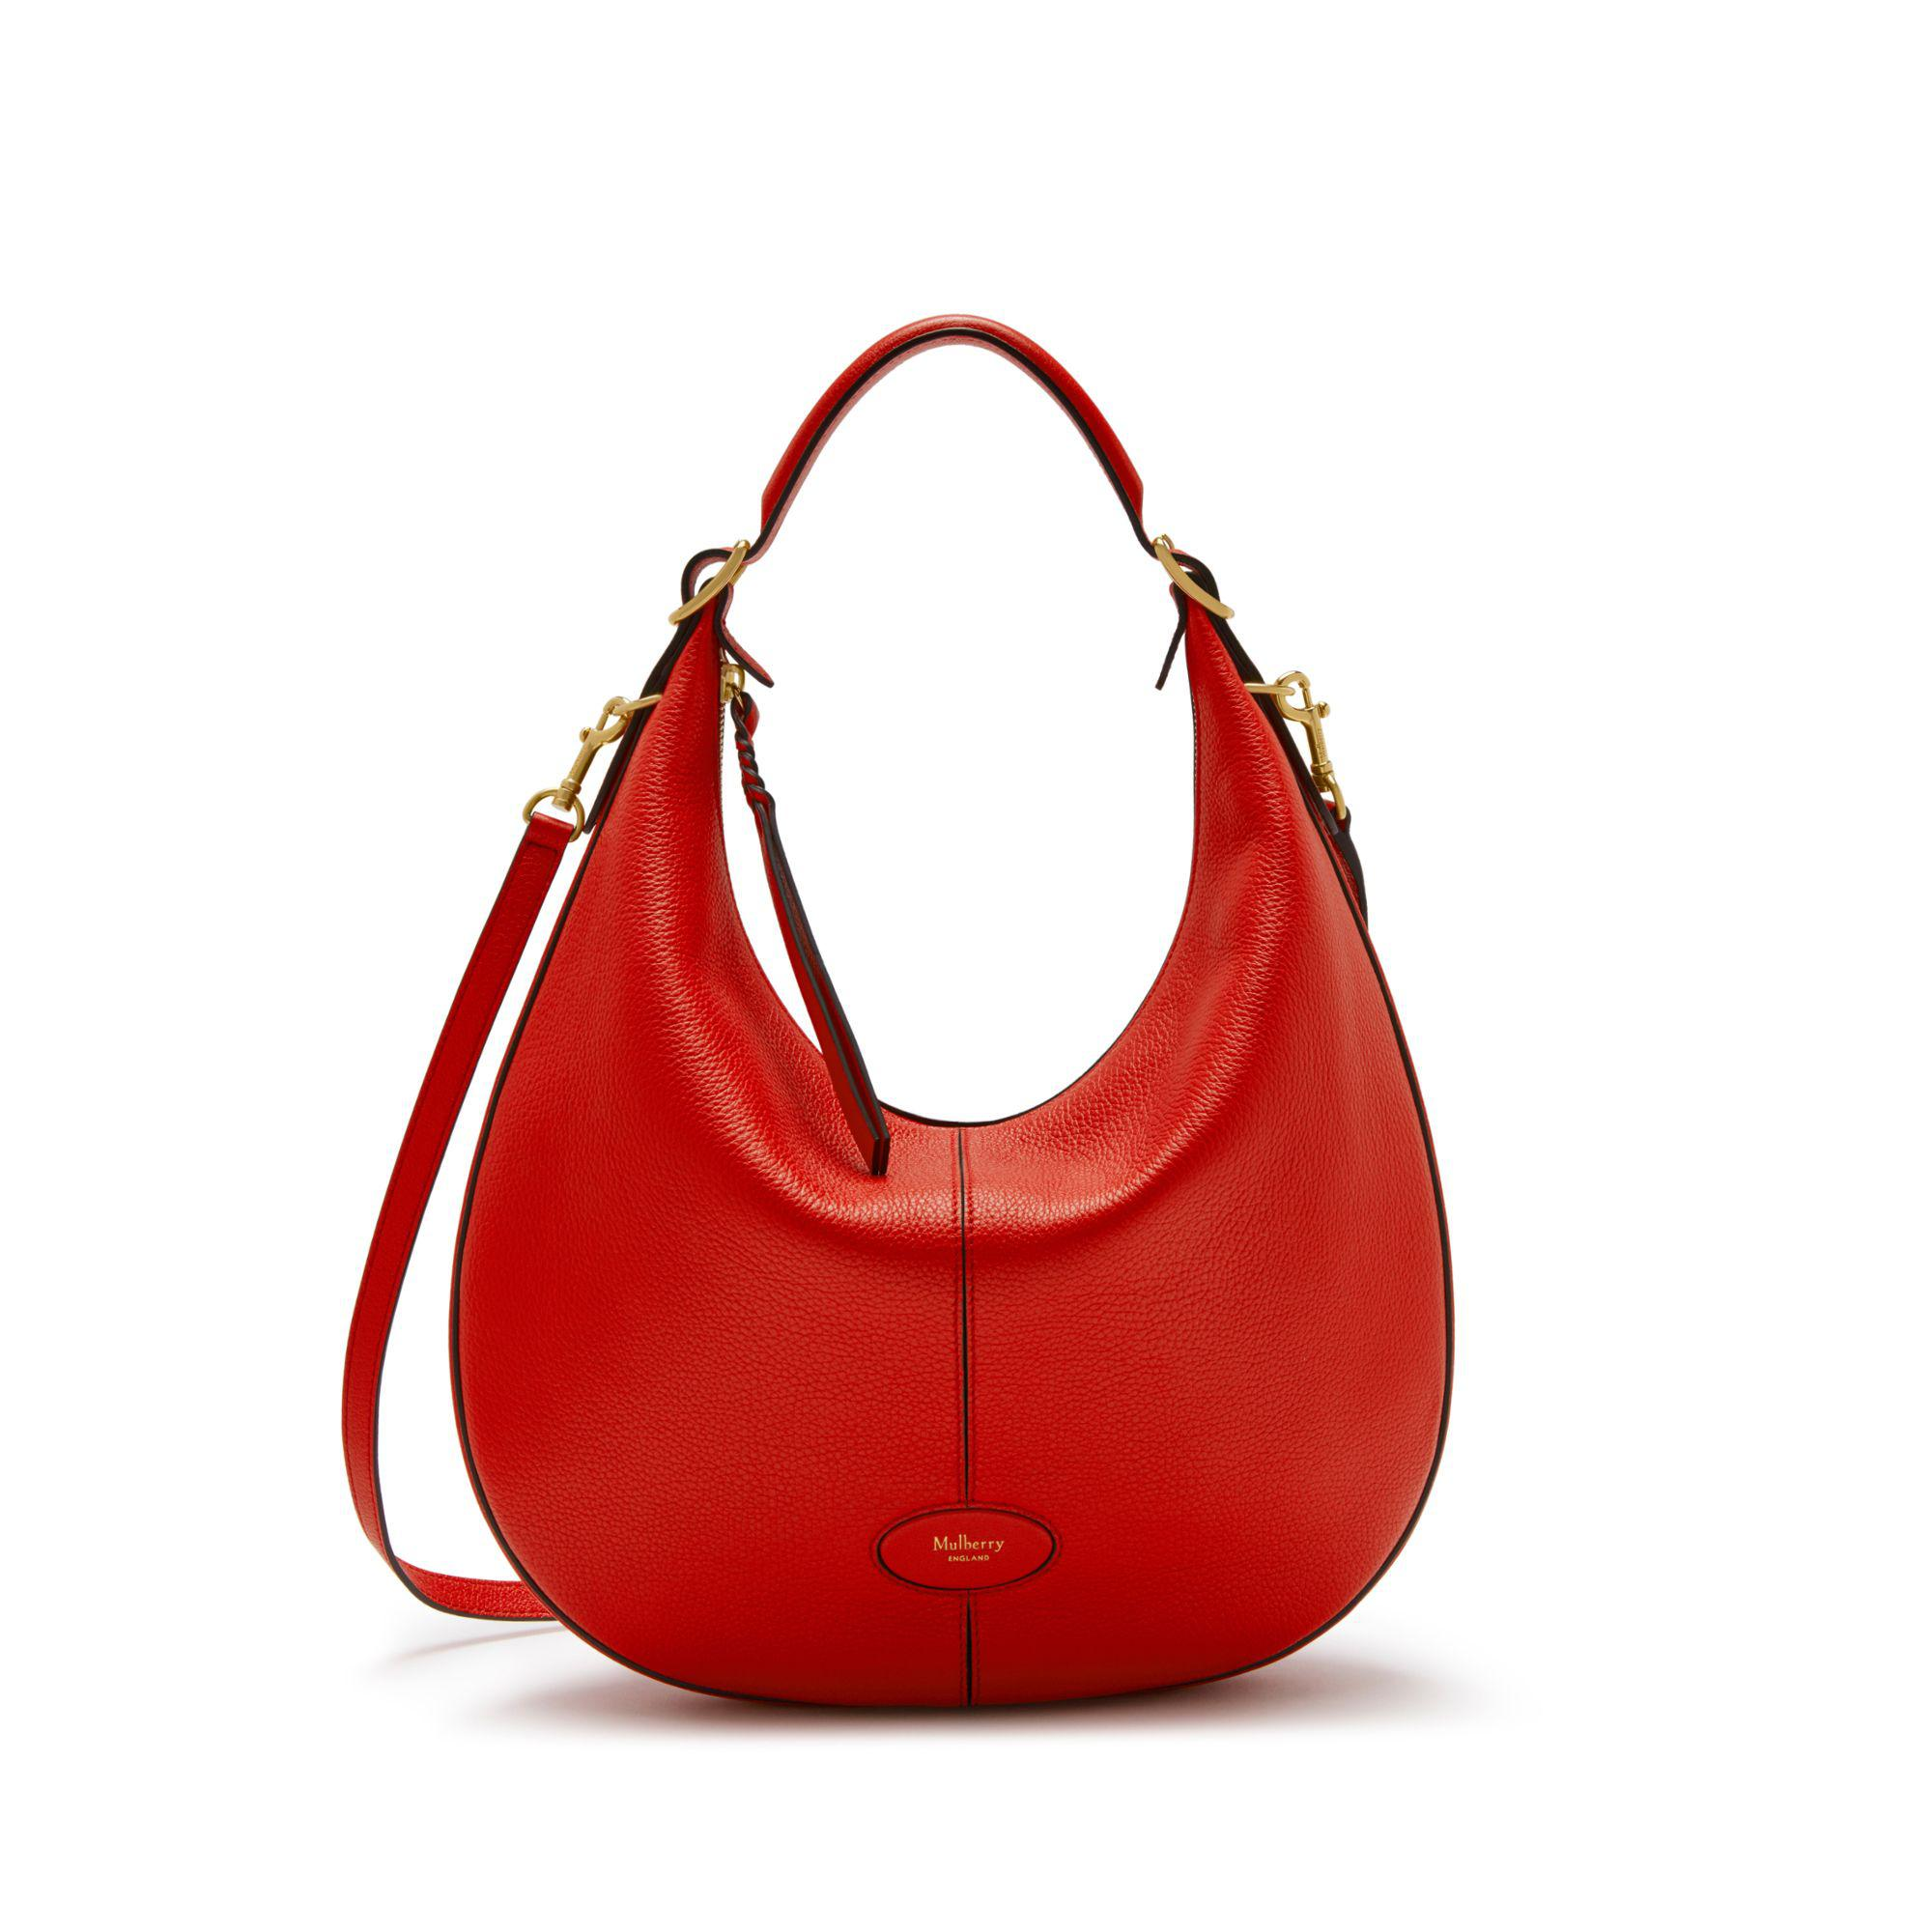 Mulberry Small Selby In Hibiscus Red Small Classic Grain in Red - Lyst 6f6eec391e8ea